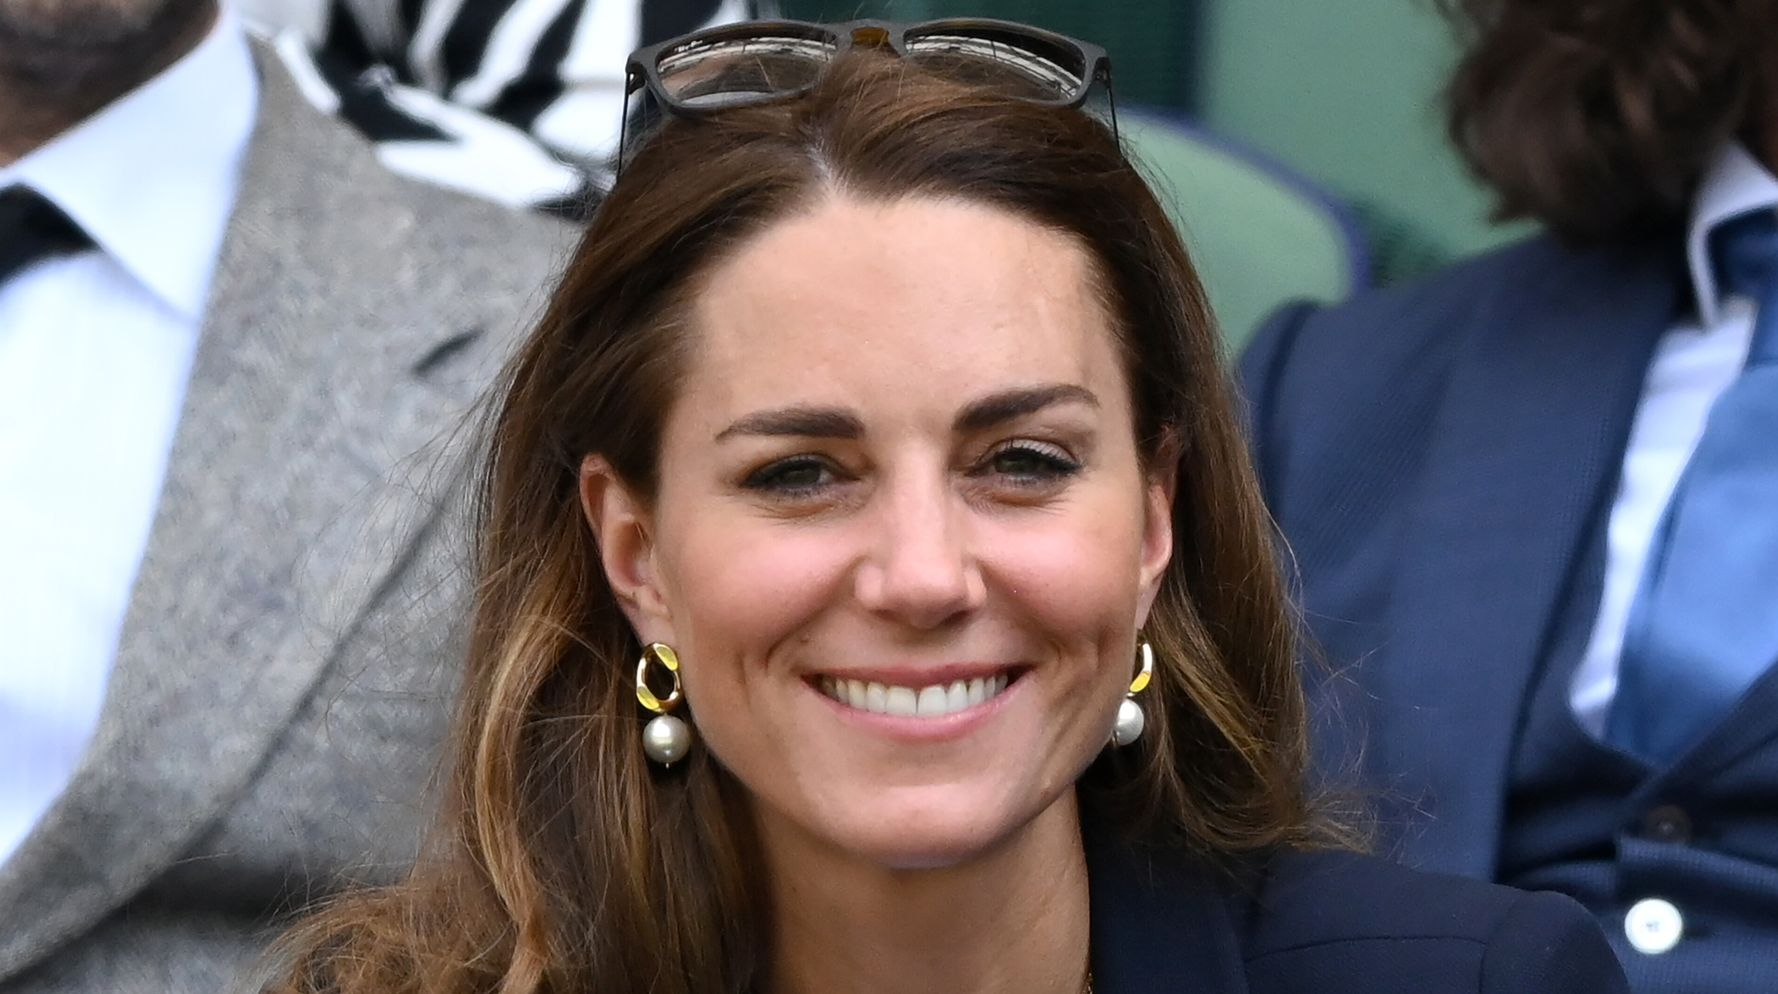 Kate Middleton Self-Isolates After Contact With Person Who Tested Positive For COVD-19